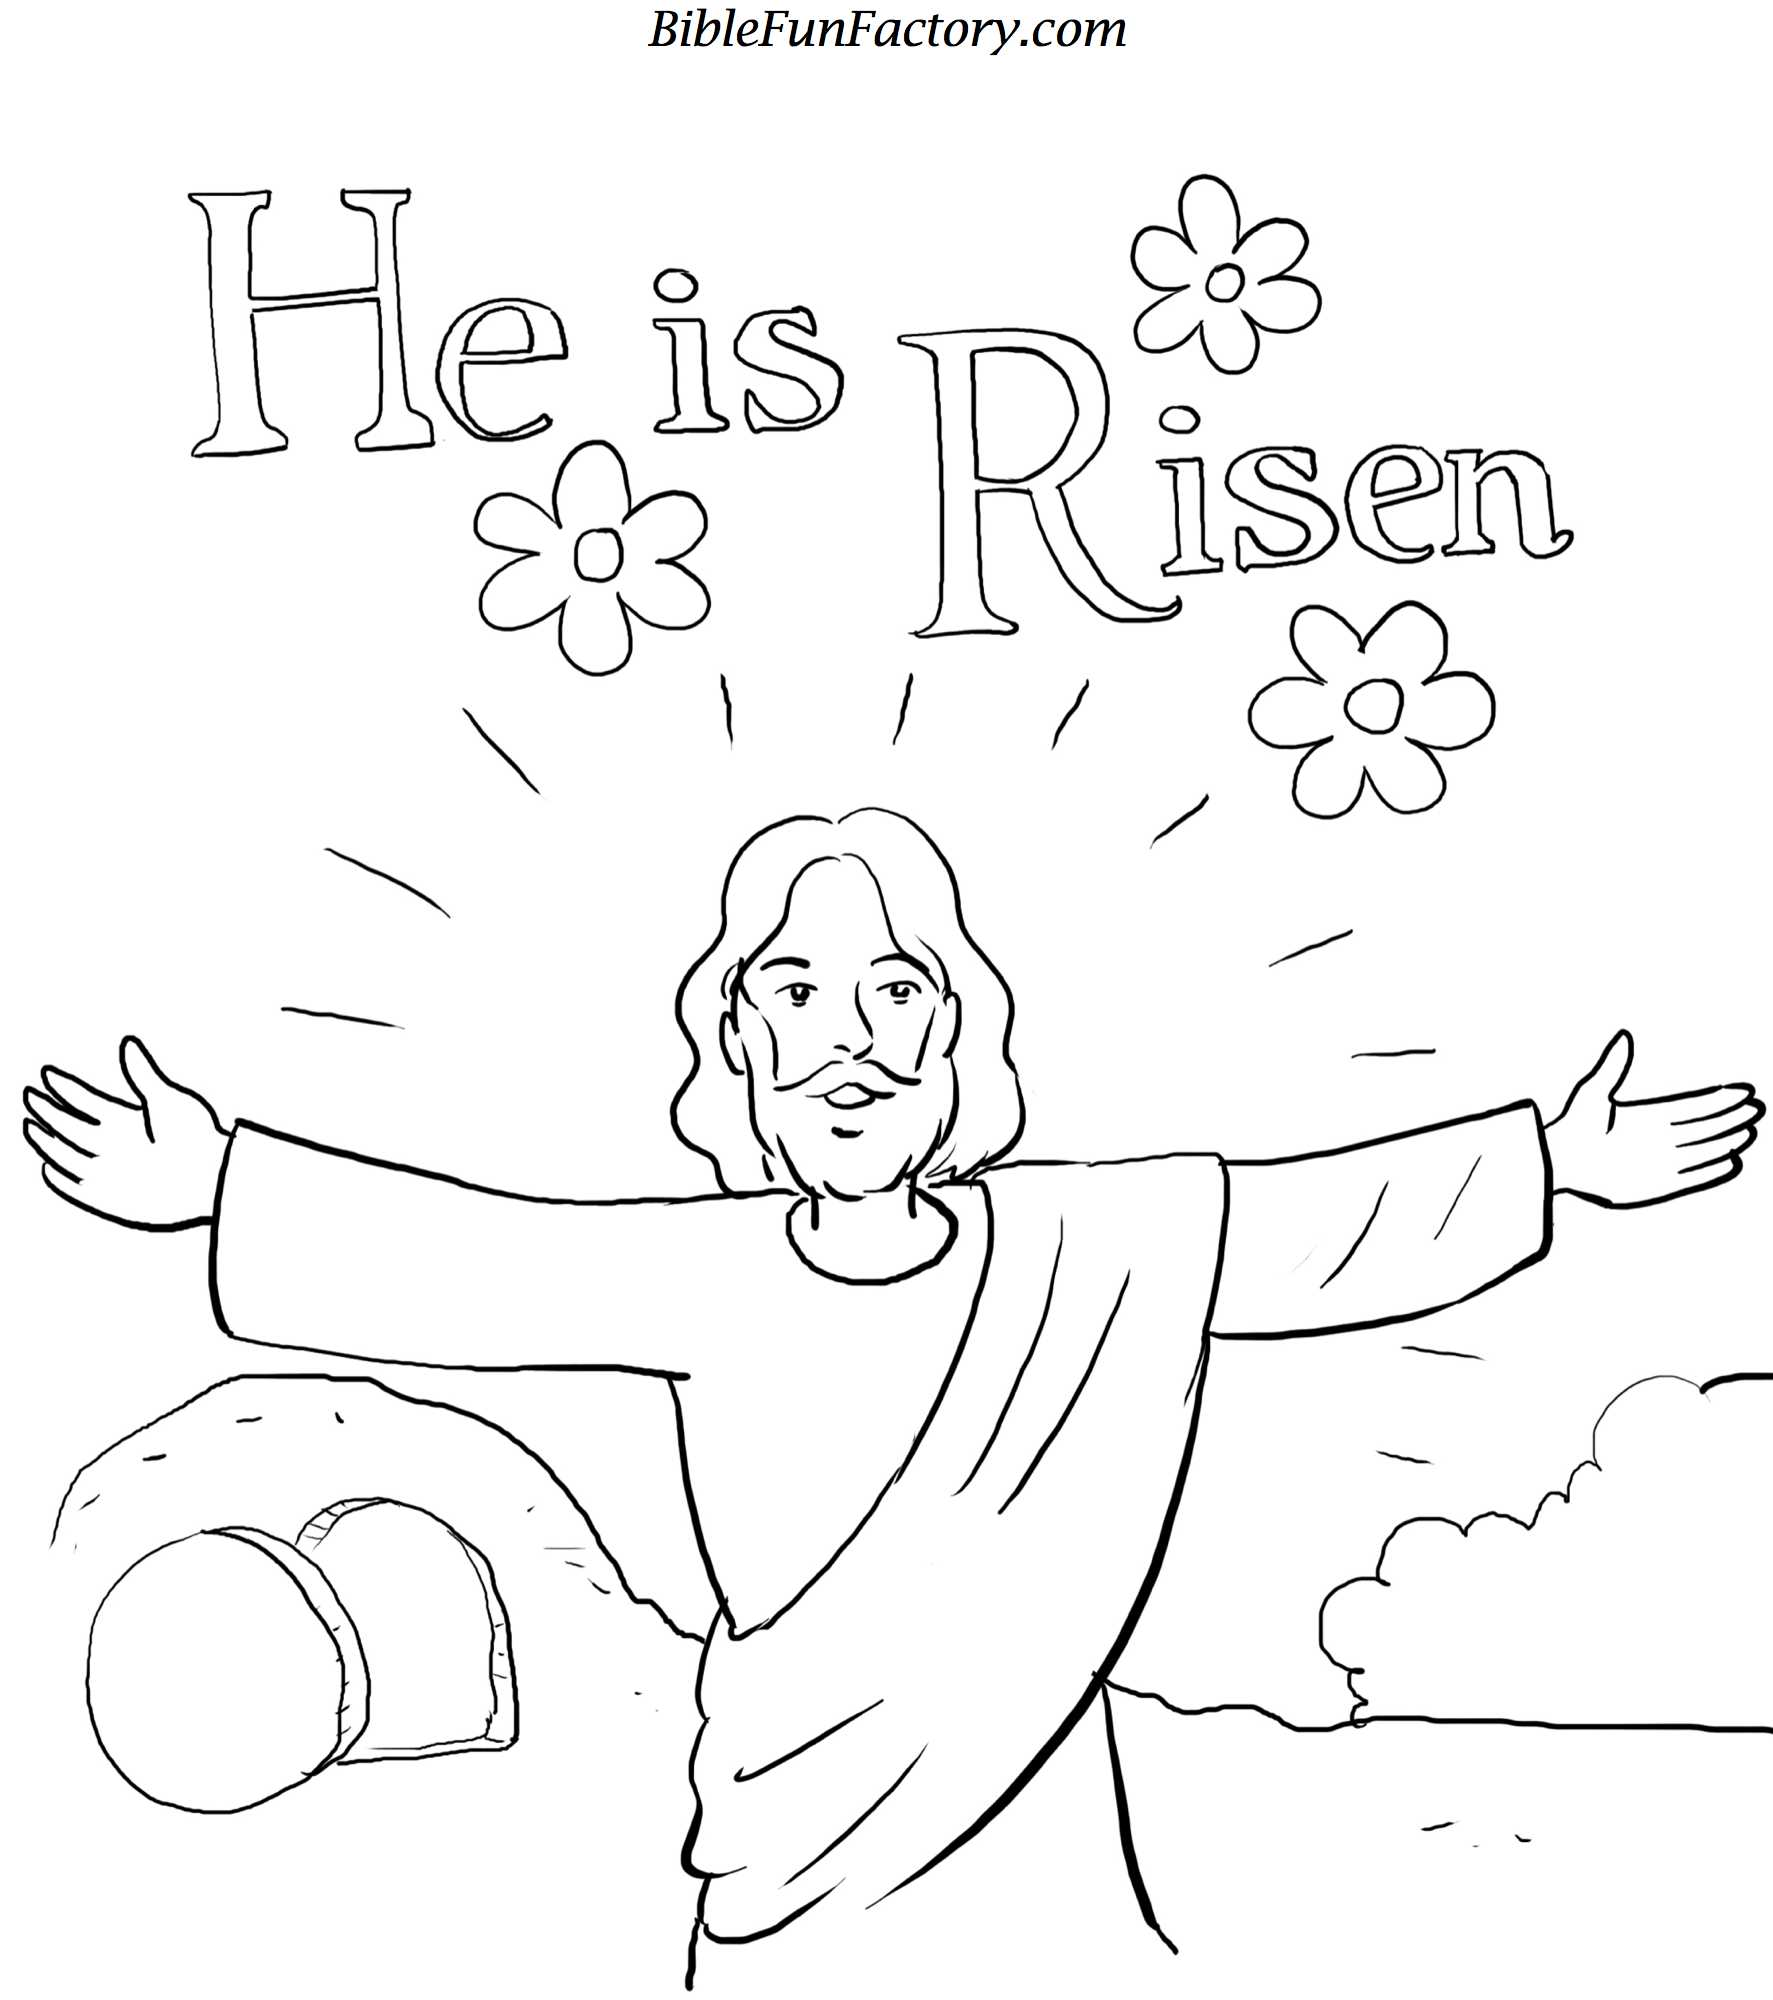 easter coloring pages printable free printable easter coloring pages easter freebies printable easter coloring pages